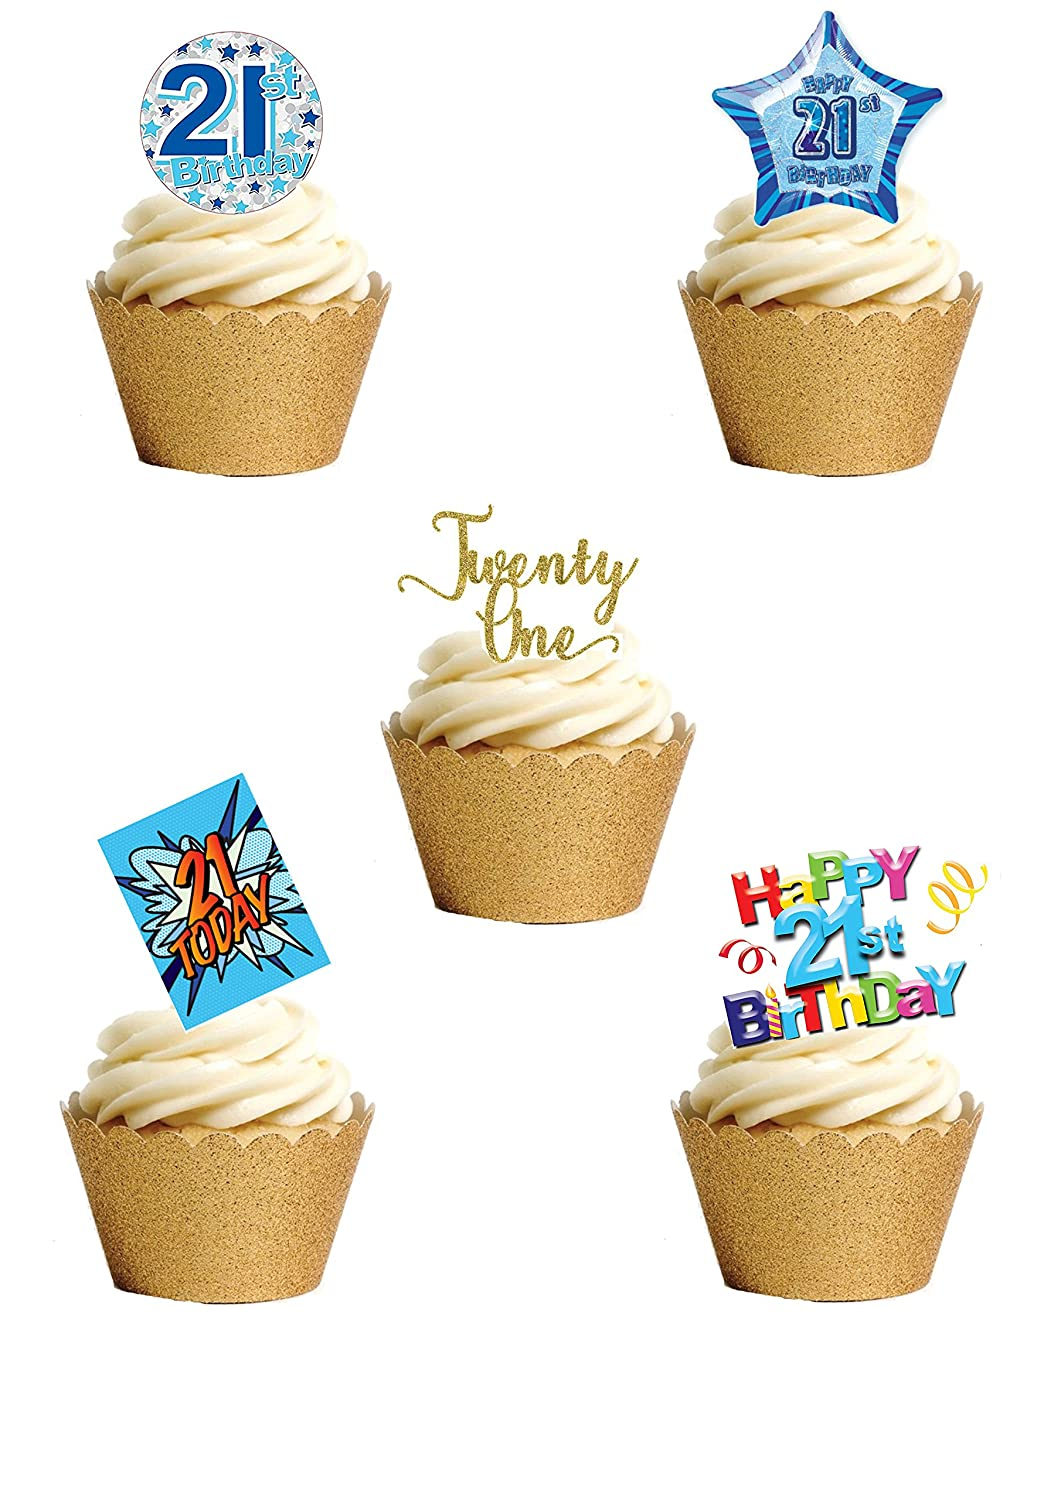 Remarkable 17 Stand Up Twenty One 21St Birthday Boy Man Themed Edible Wafer Personalised Birthday Cards Petedlily Jamesorg